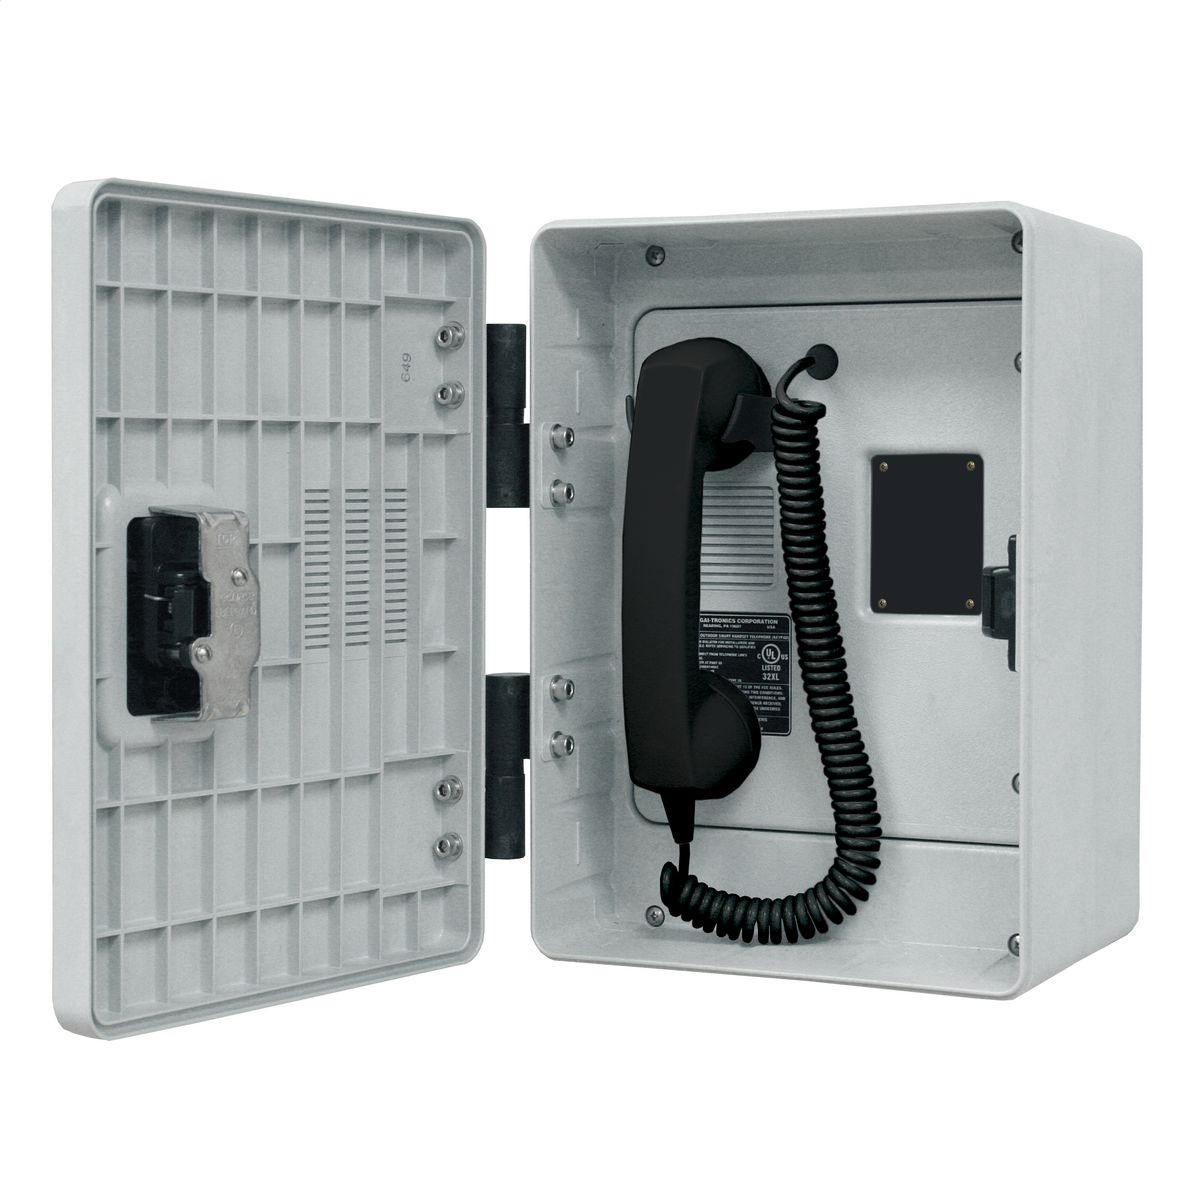 Outdoor Rugged Telephone Analog Auto Dial Brand